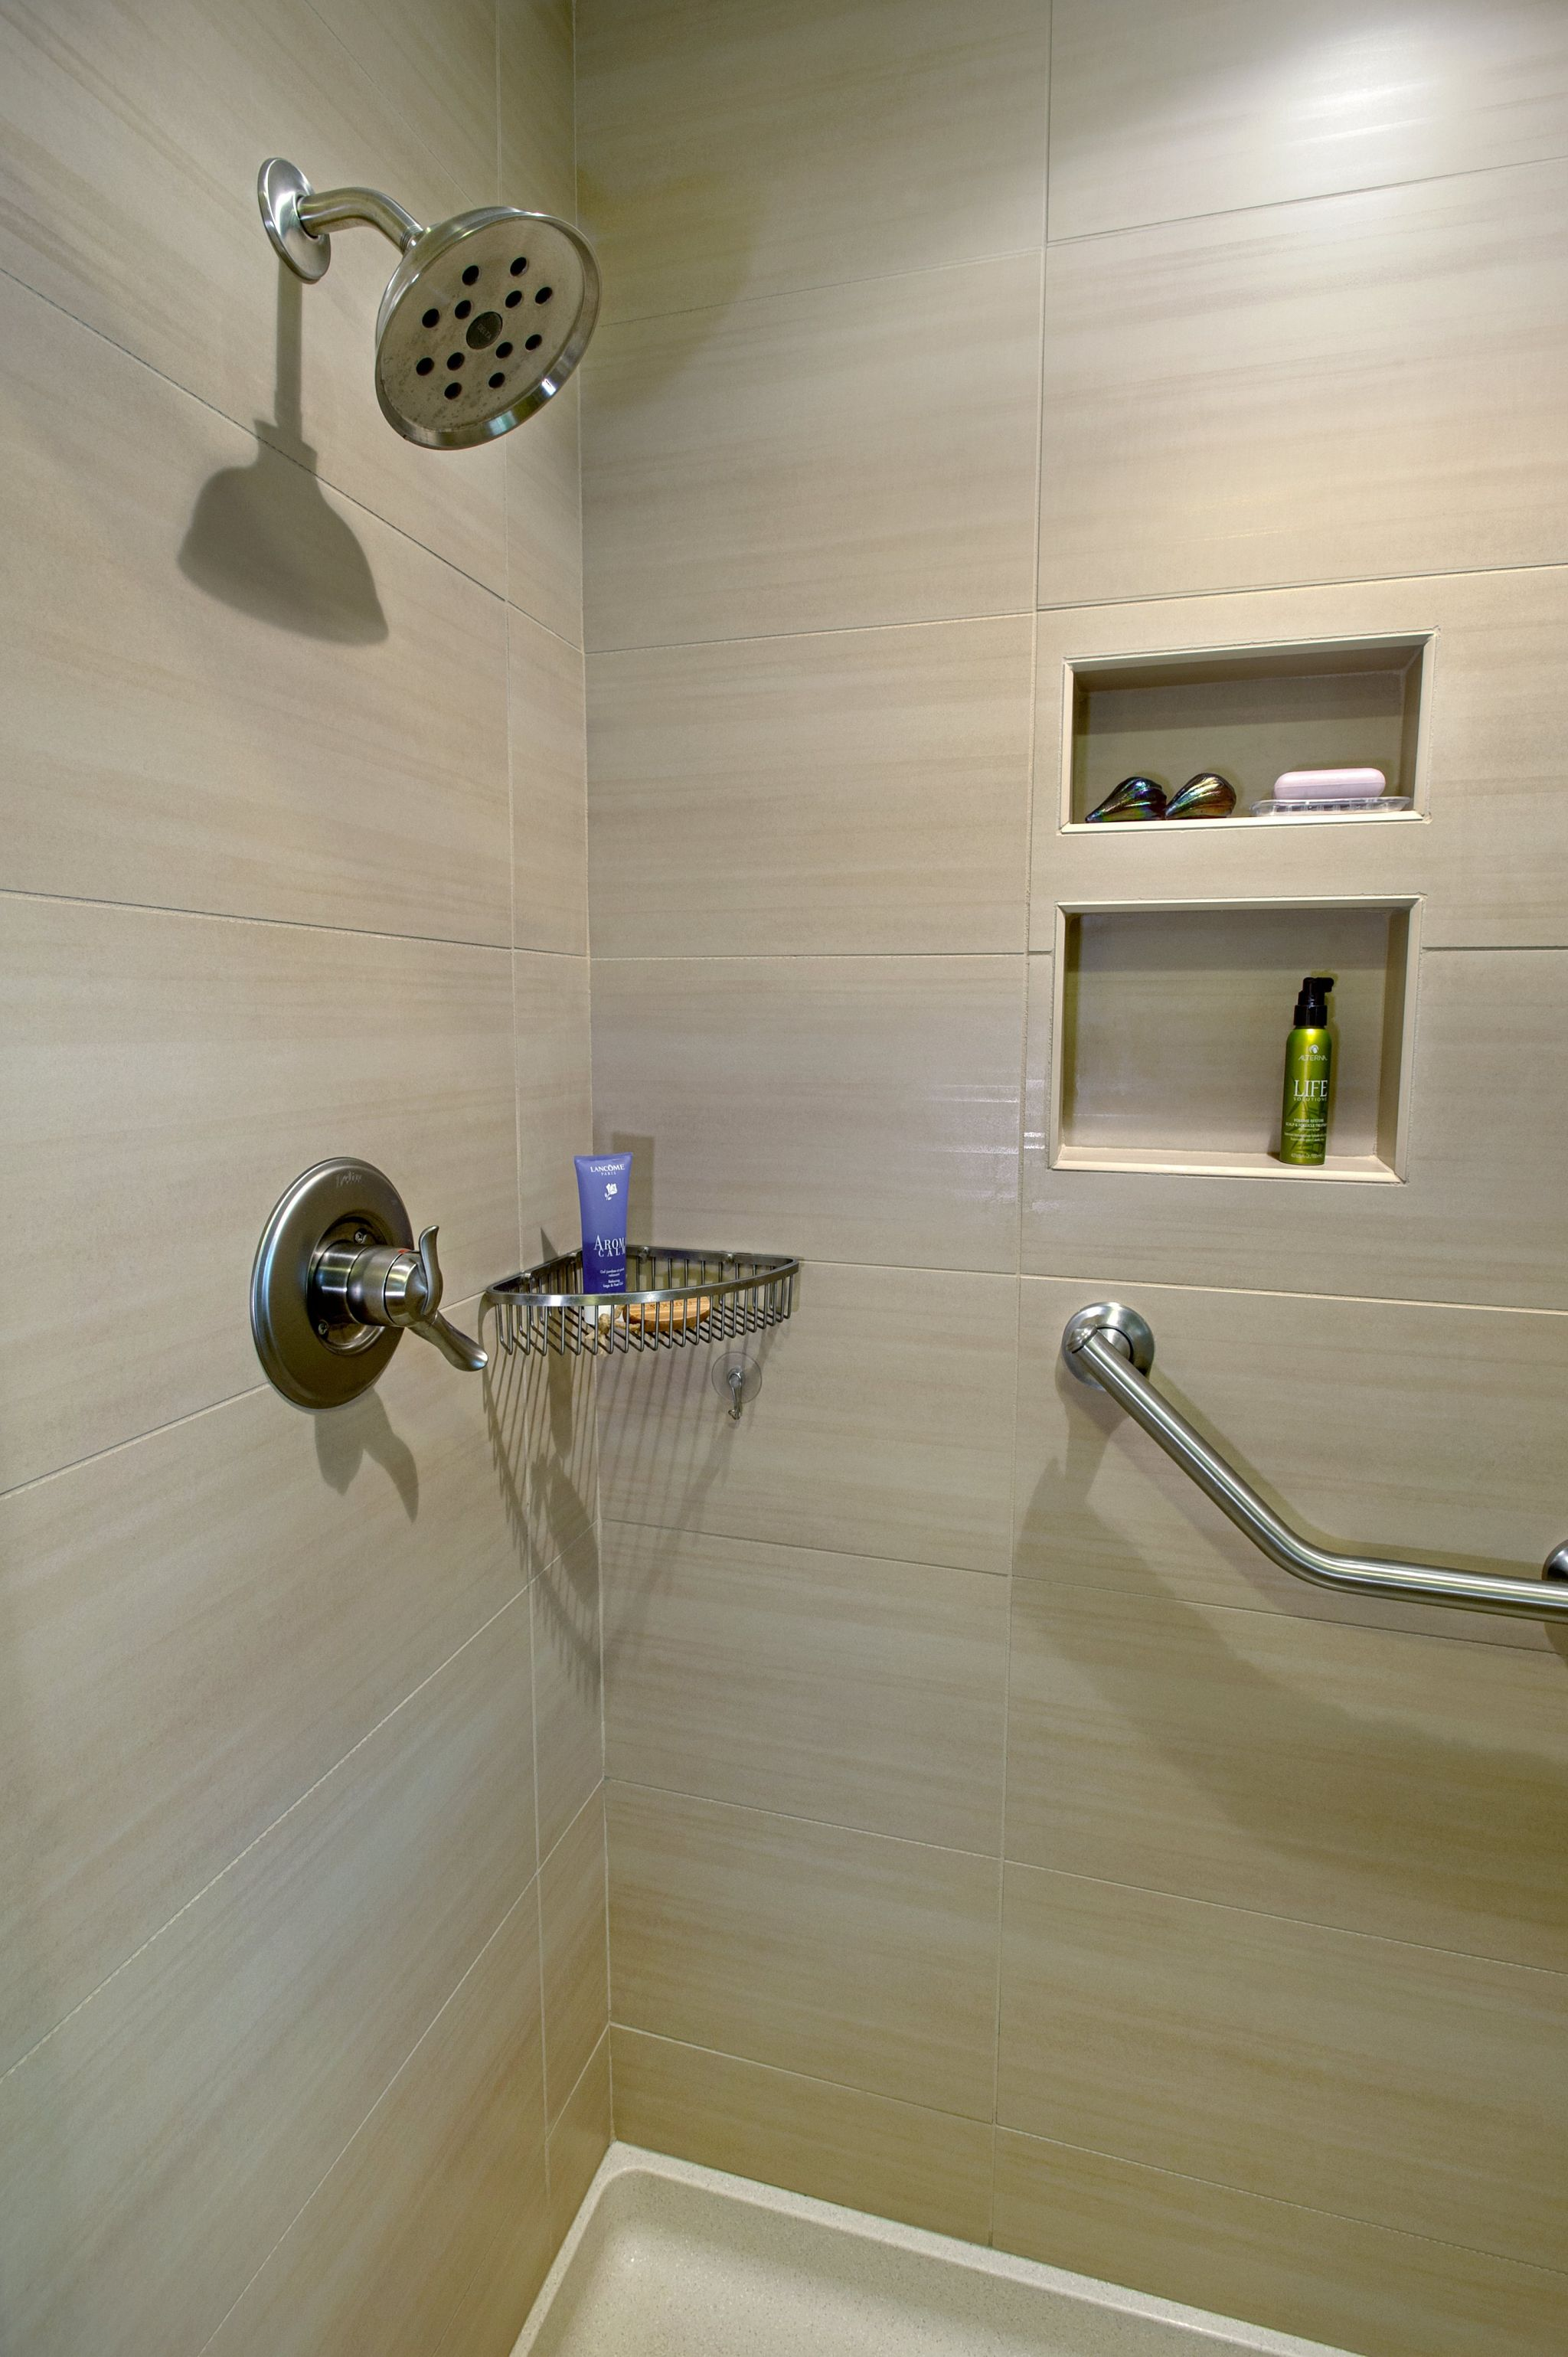 Shower with a small, silver storage basket mounted in the front right corner